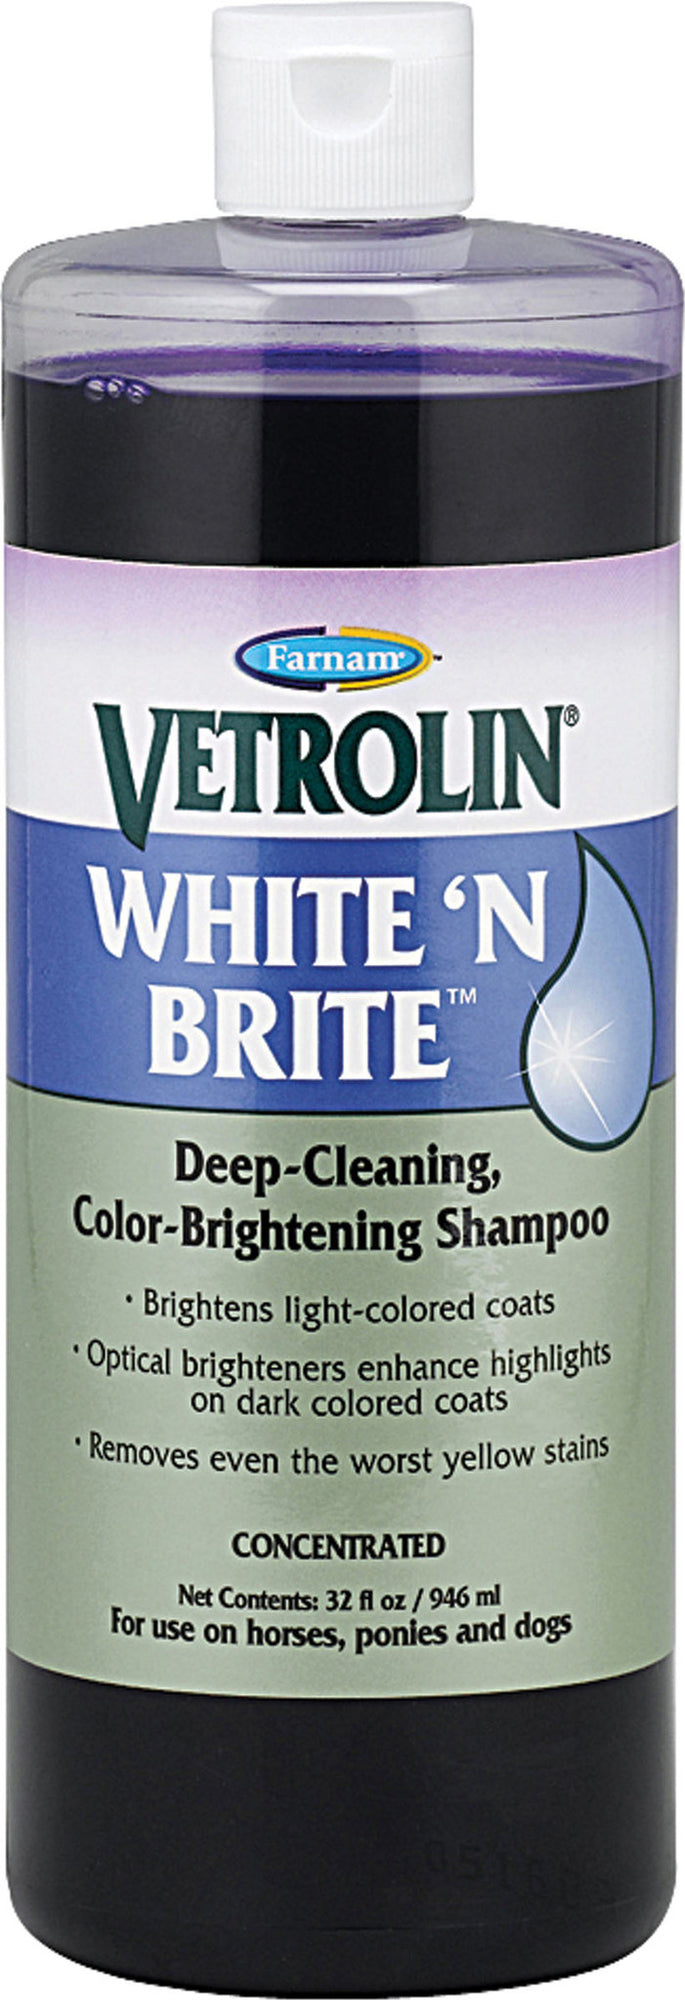 Vetrolin White N Brite Color Brightening Shampoo